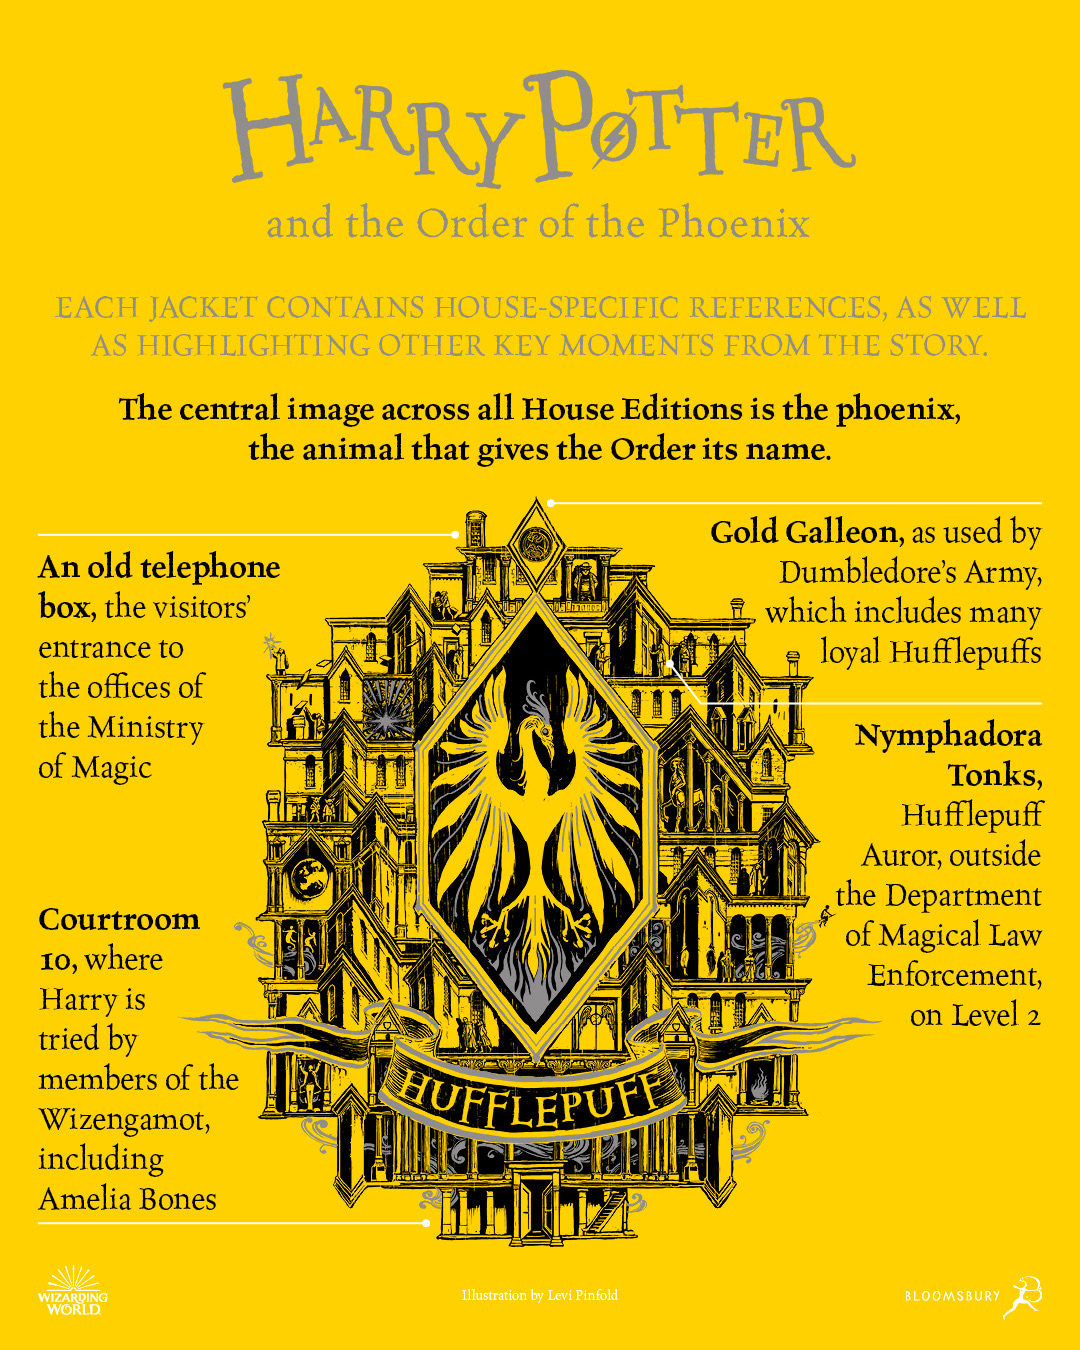 'Order of the Phoenix' house edition cover artwork chart (Hufflepuff)